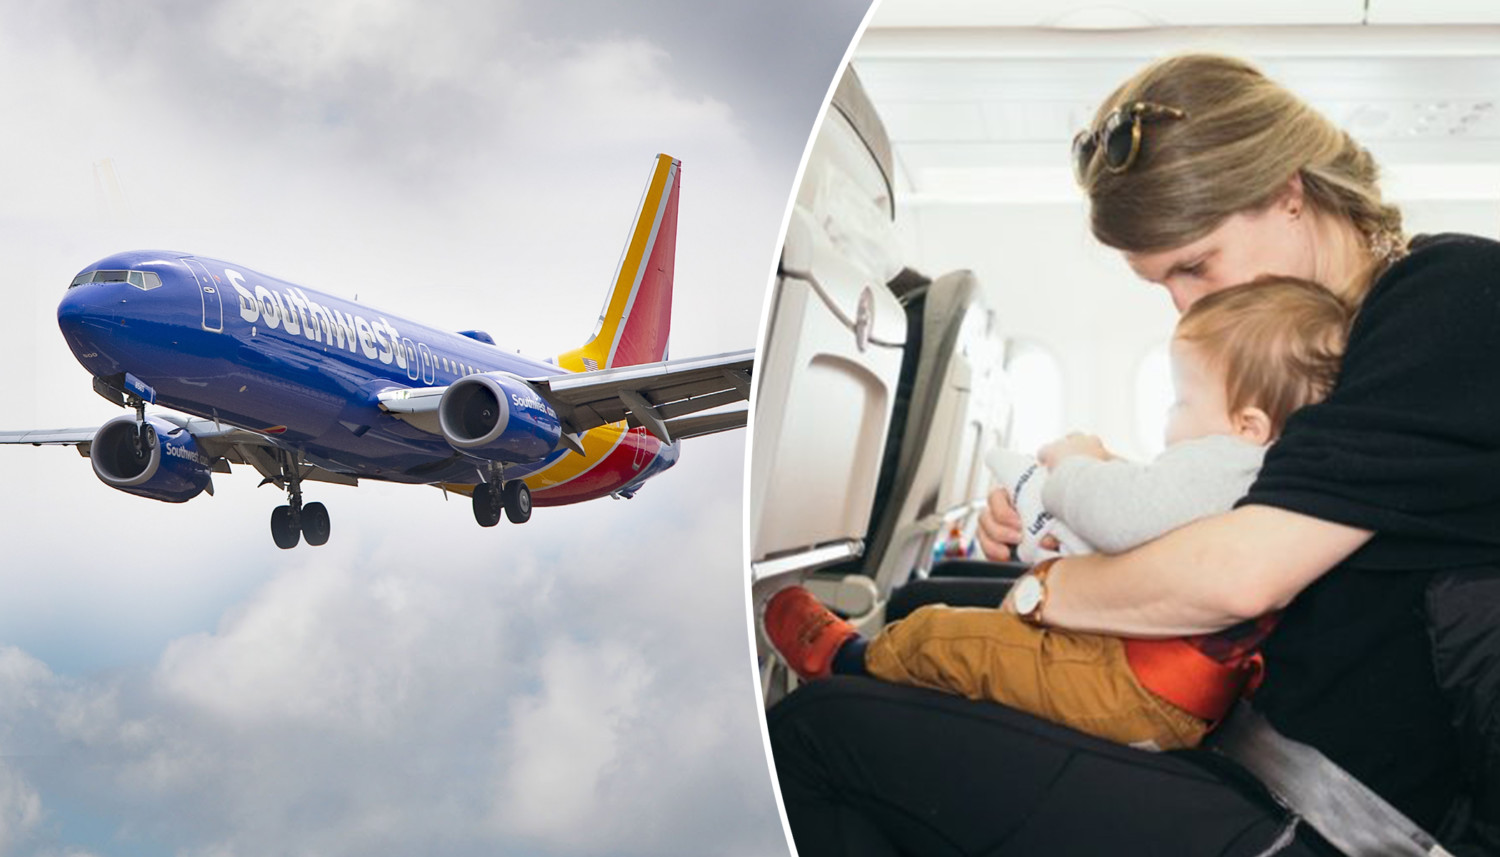 Flight Attendant Calms Crying Baby With a Simple Trick, Leaving Anxious Mom in Tears